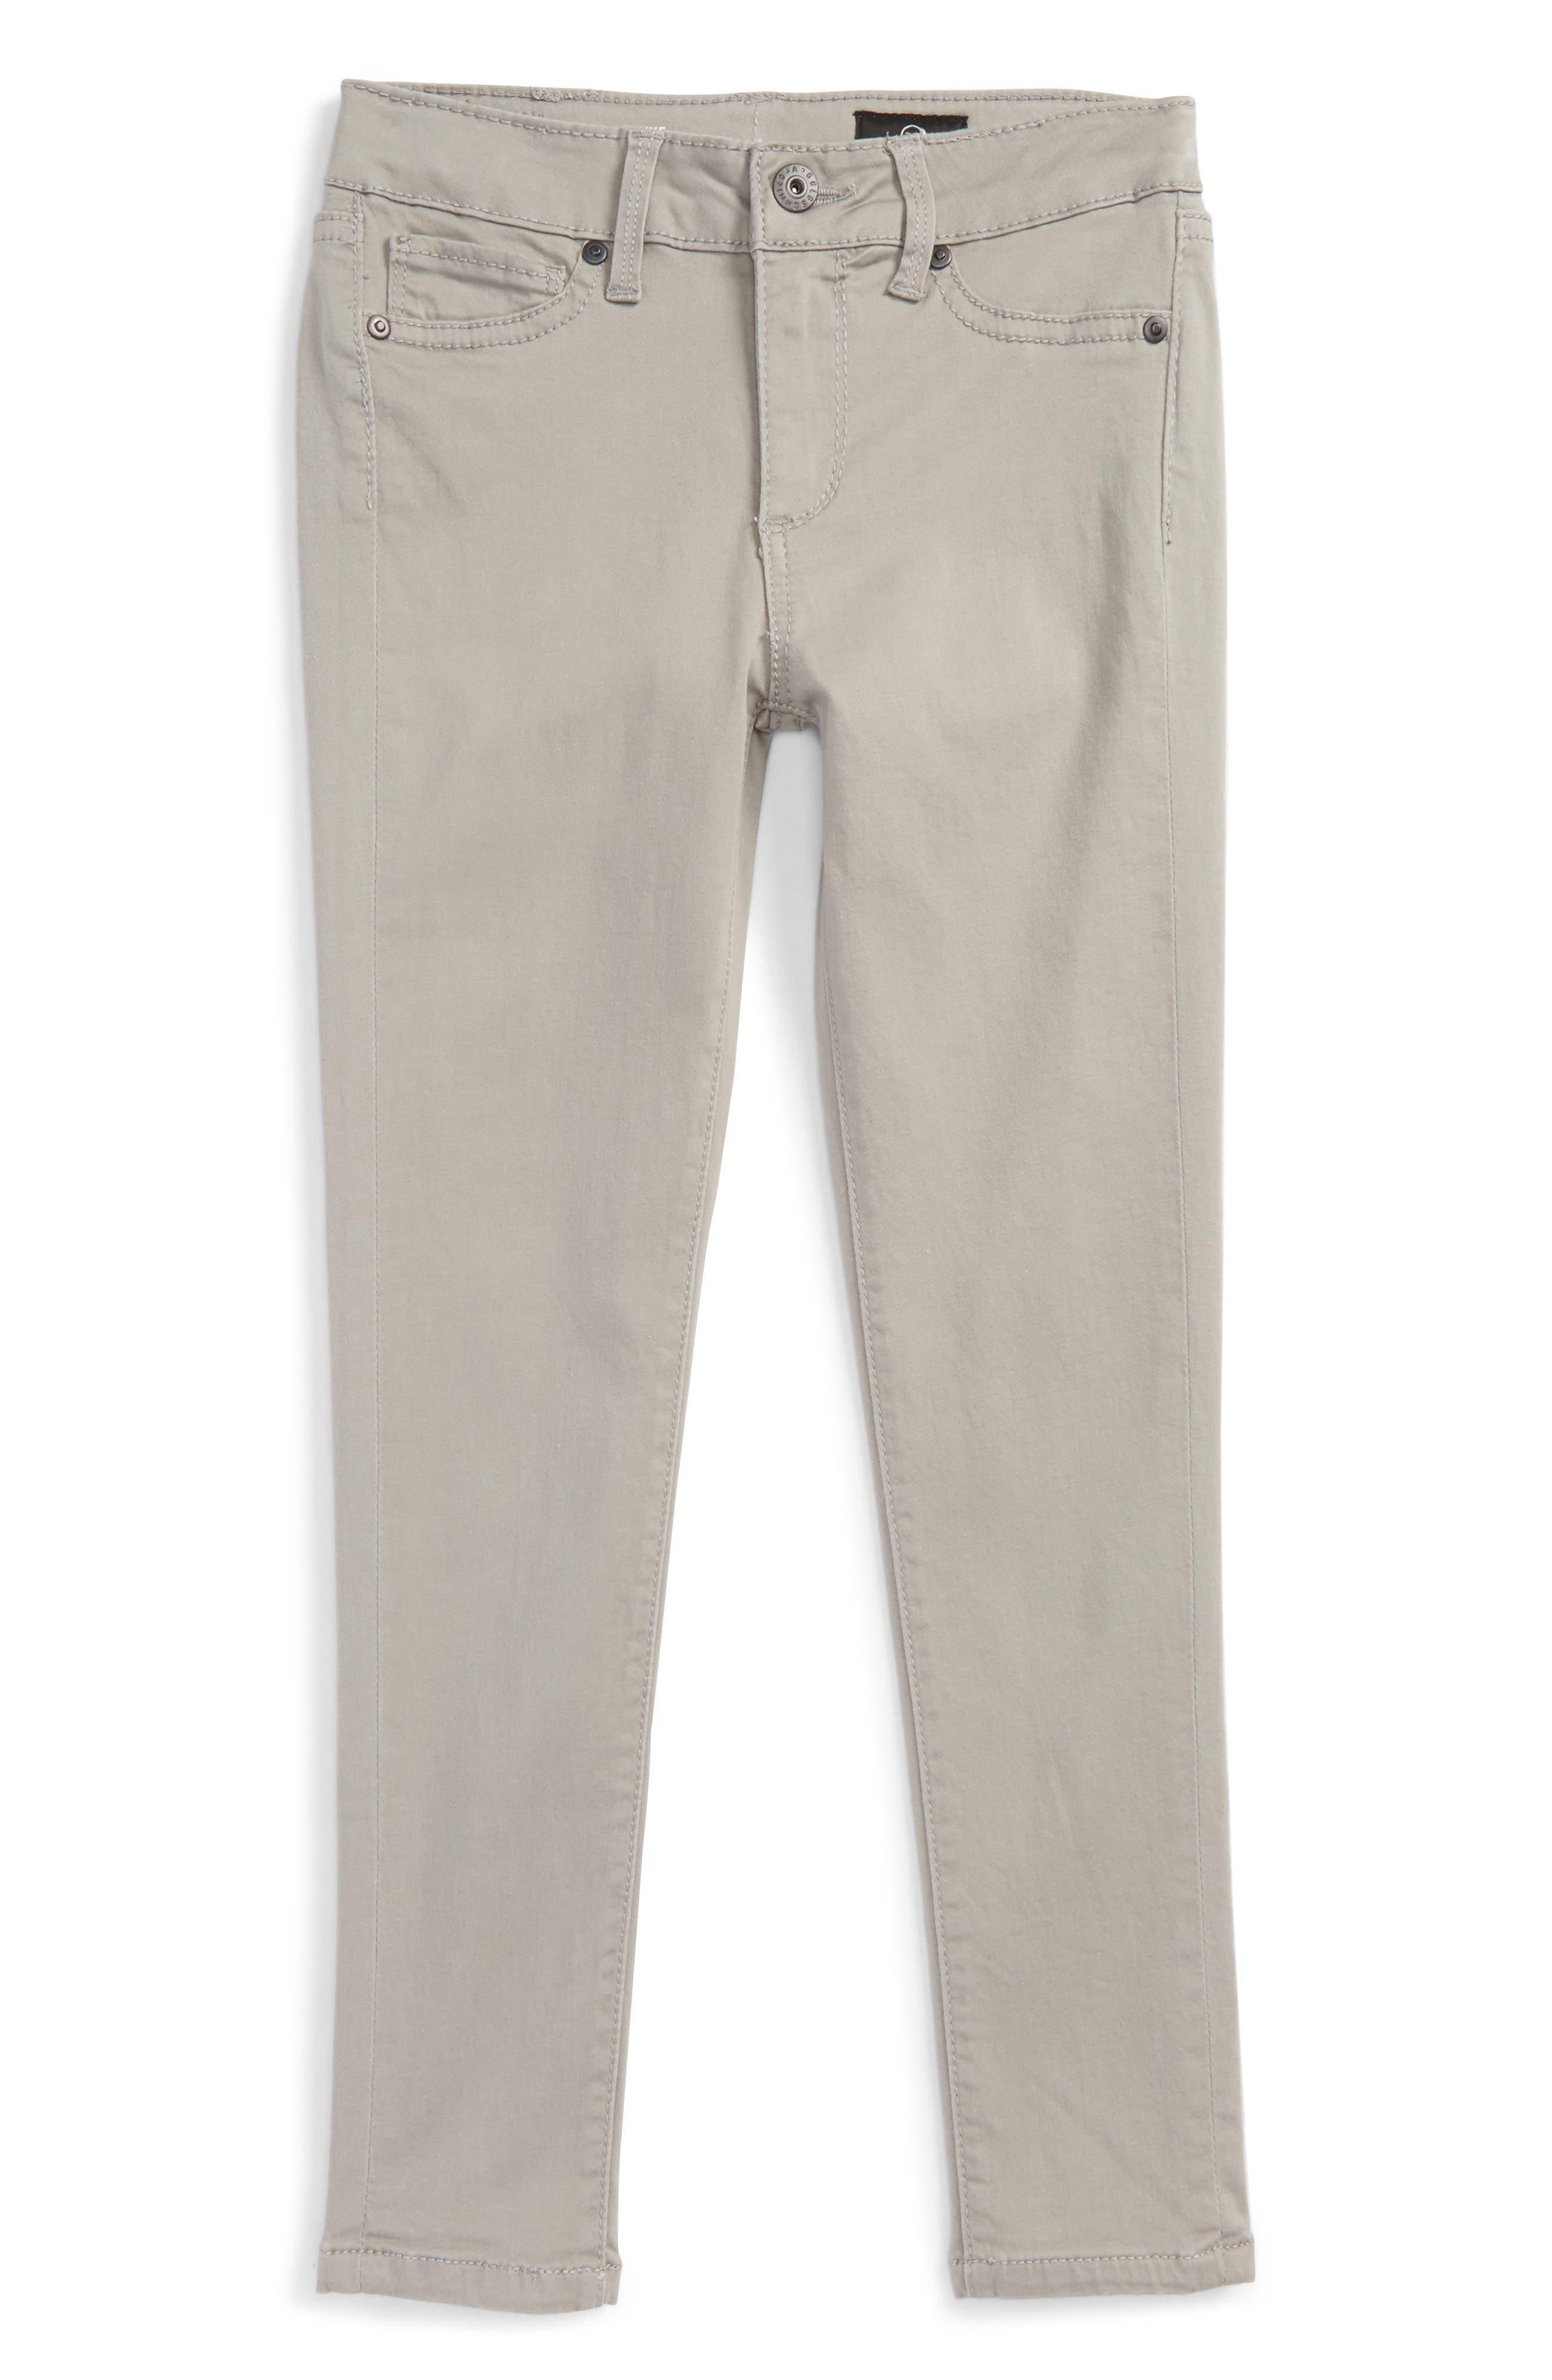 Twiggy Luxe Ankle Skinny Jeans,                             Main thumbnail 1, color,                             063